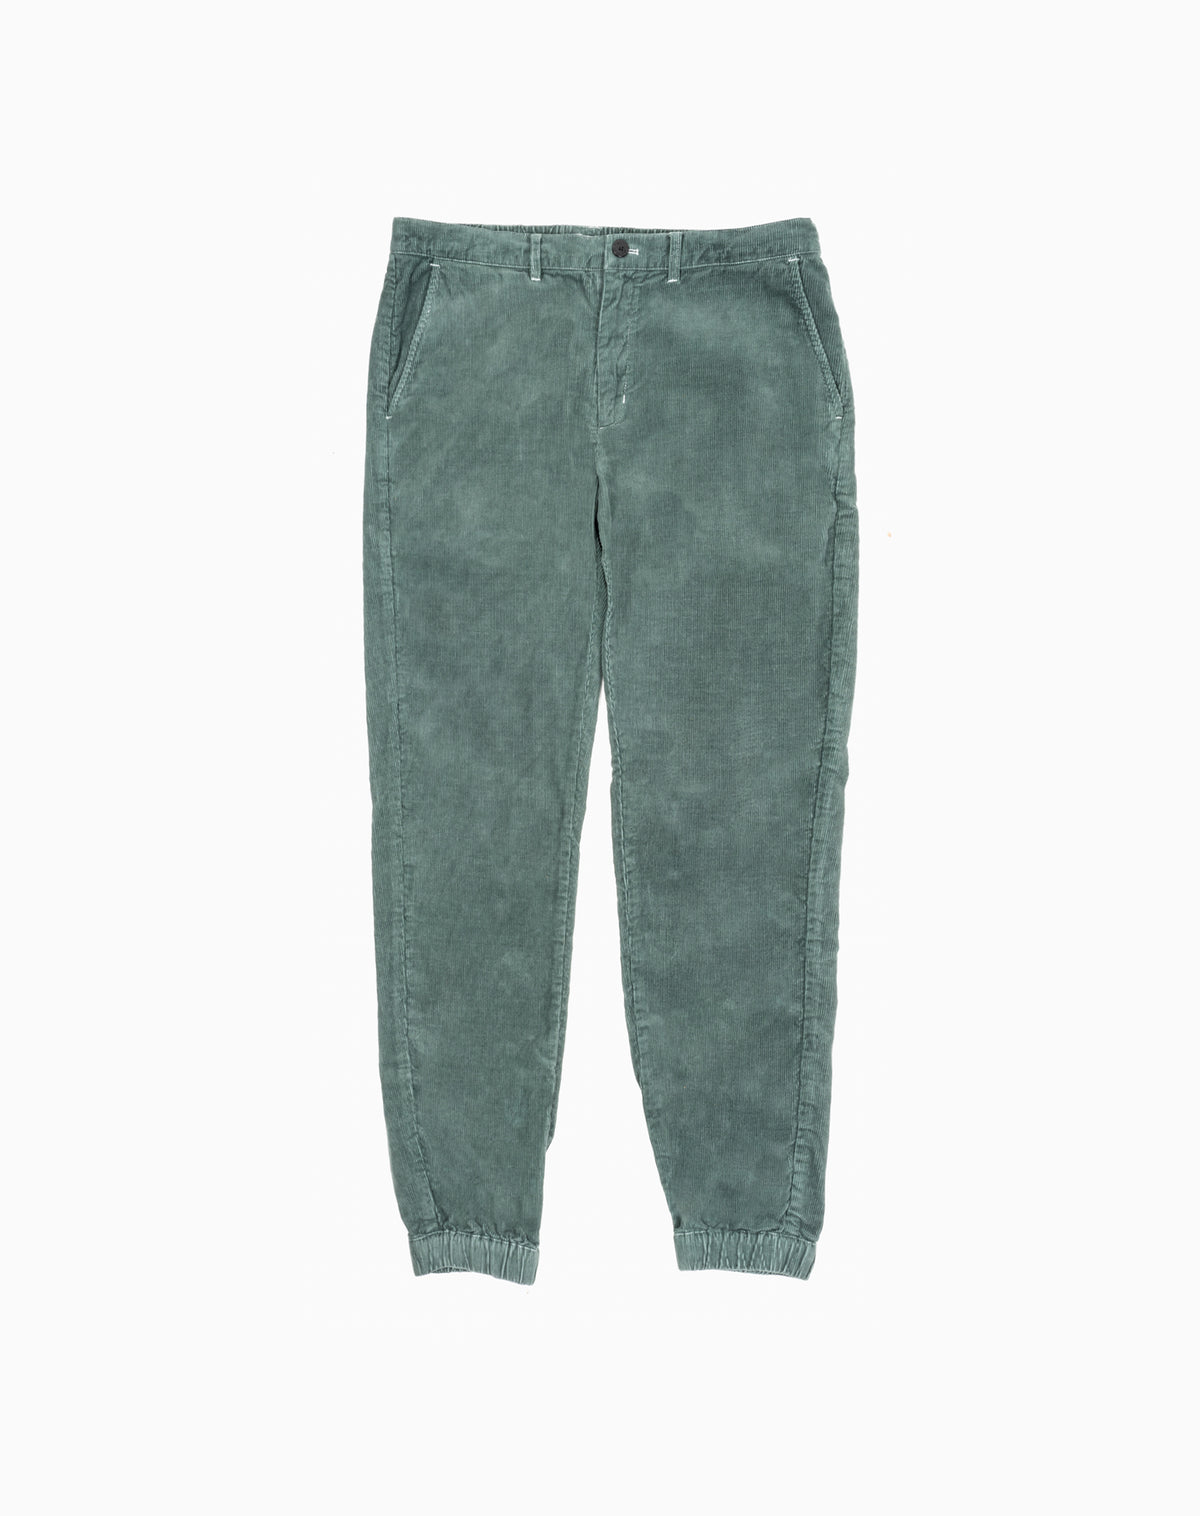 Deck Jogger in Forest Green Corduroy